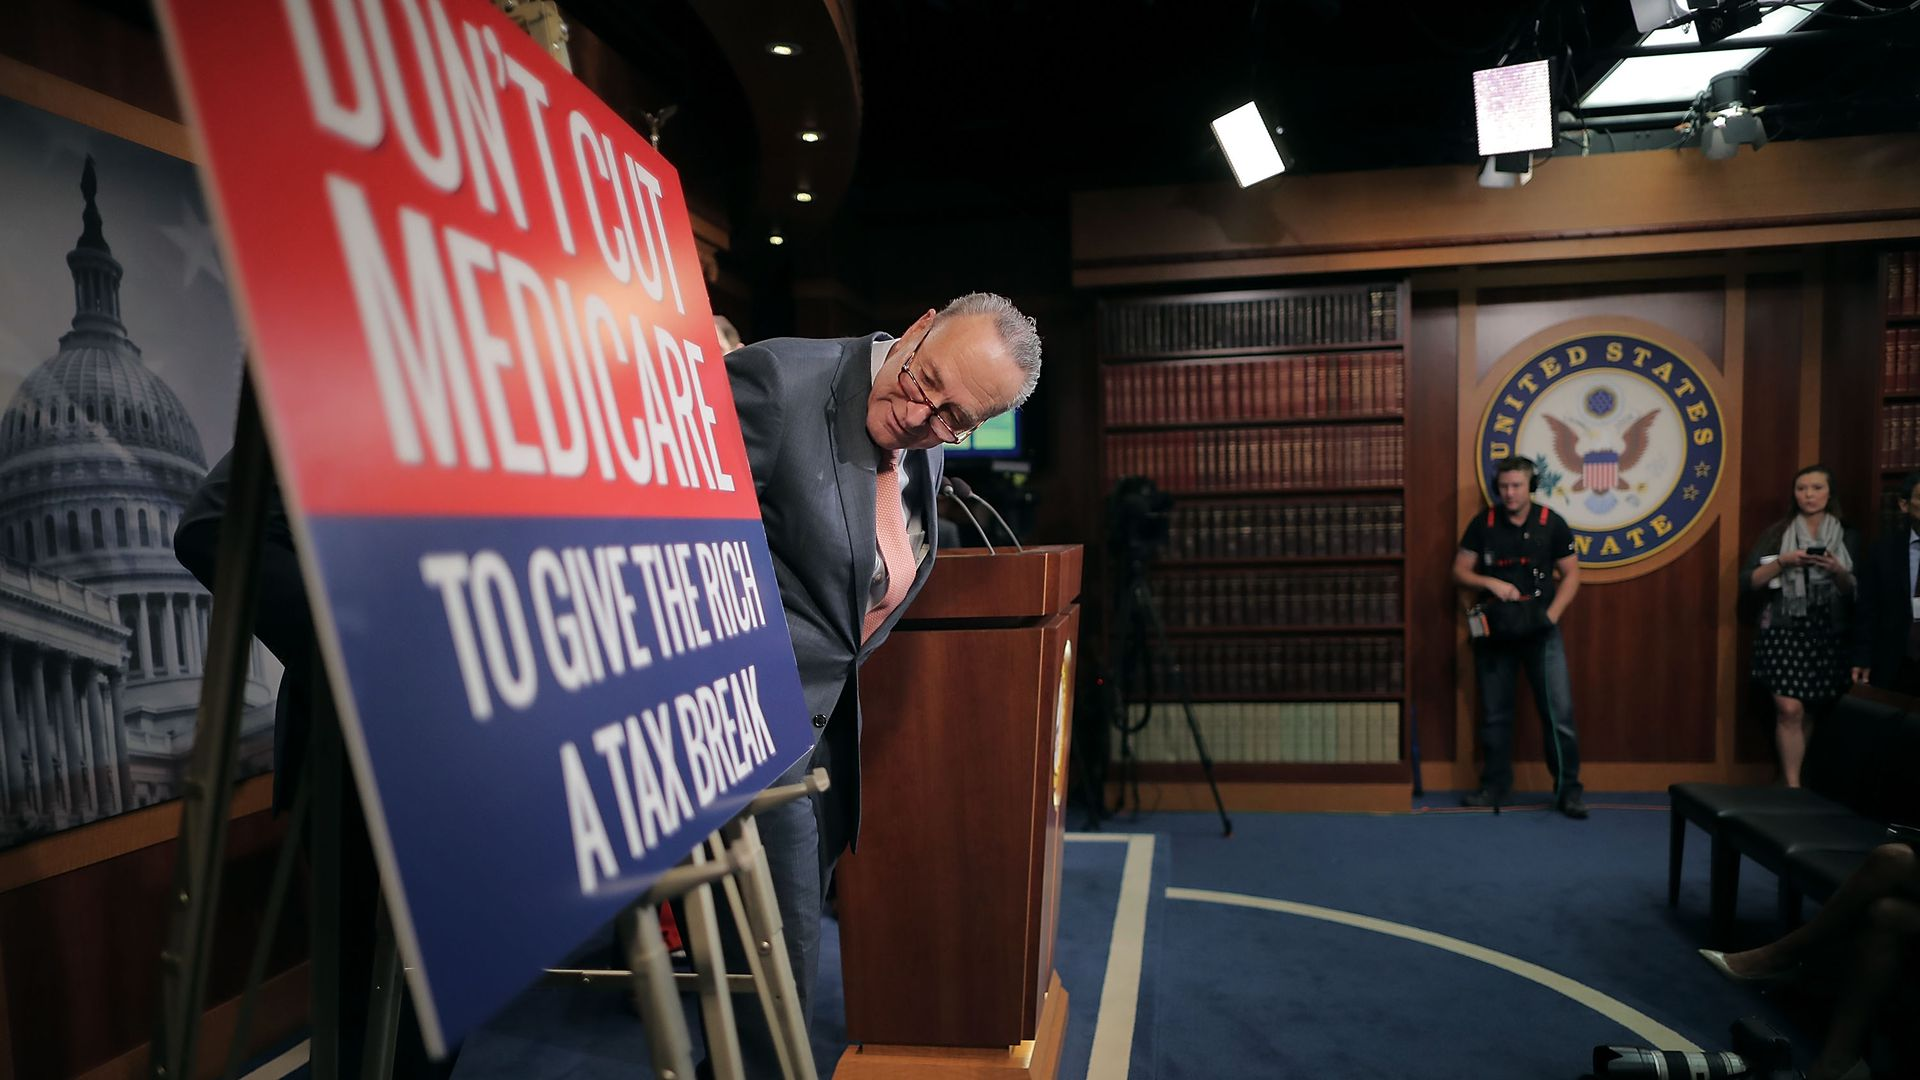 Chuck Schumer leaning over to look at a sign about health care and taxes